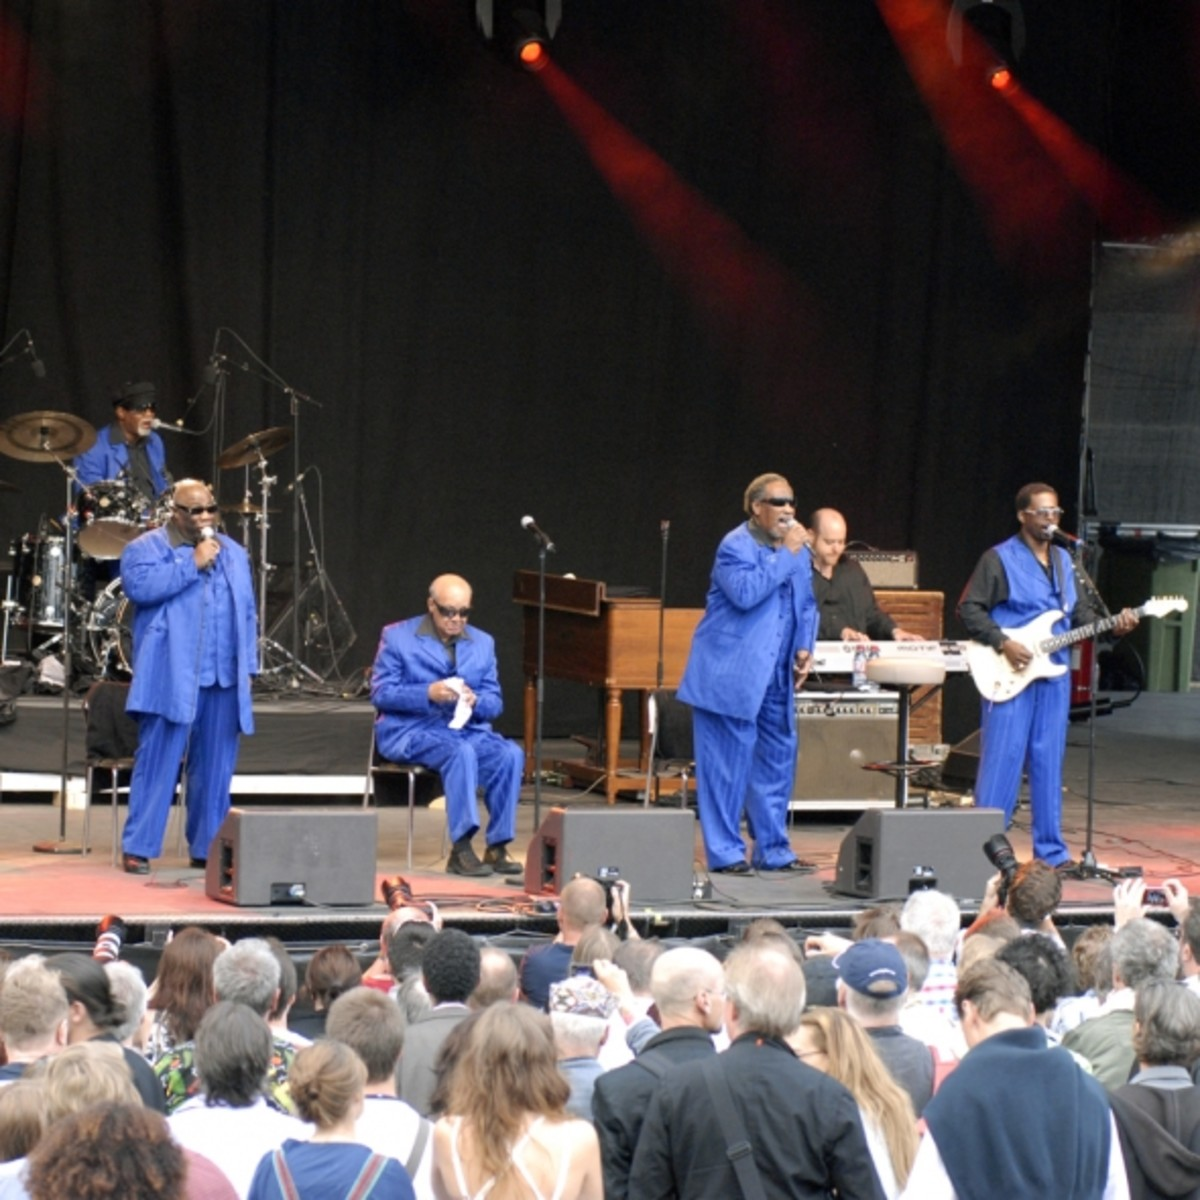 Christmas can groove if you do it right. The Blind Boys of Alabama perform in Stockholm.